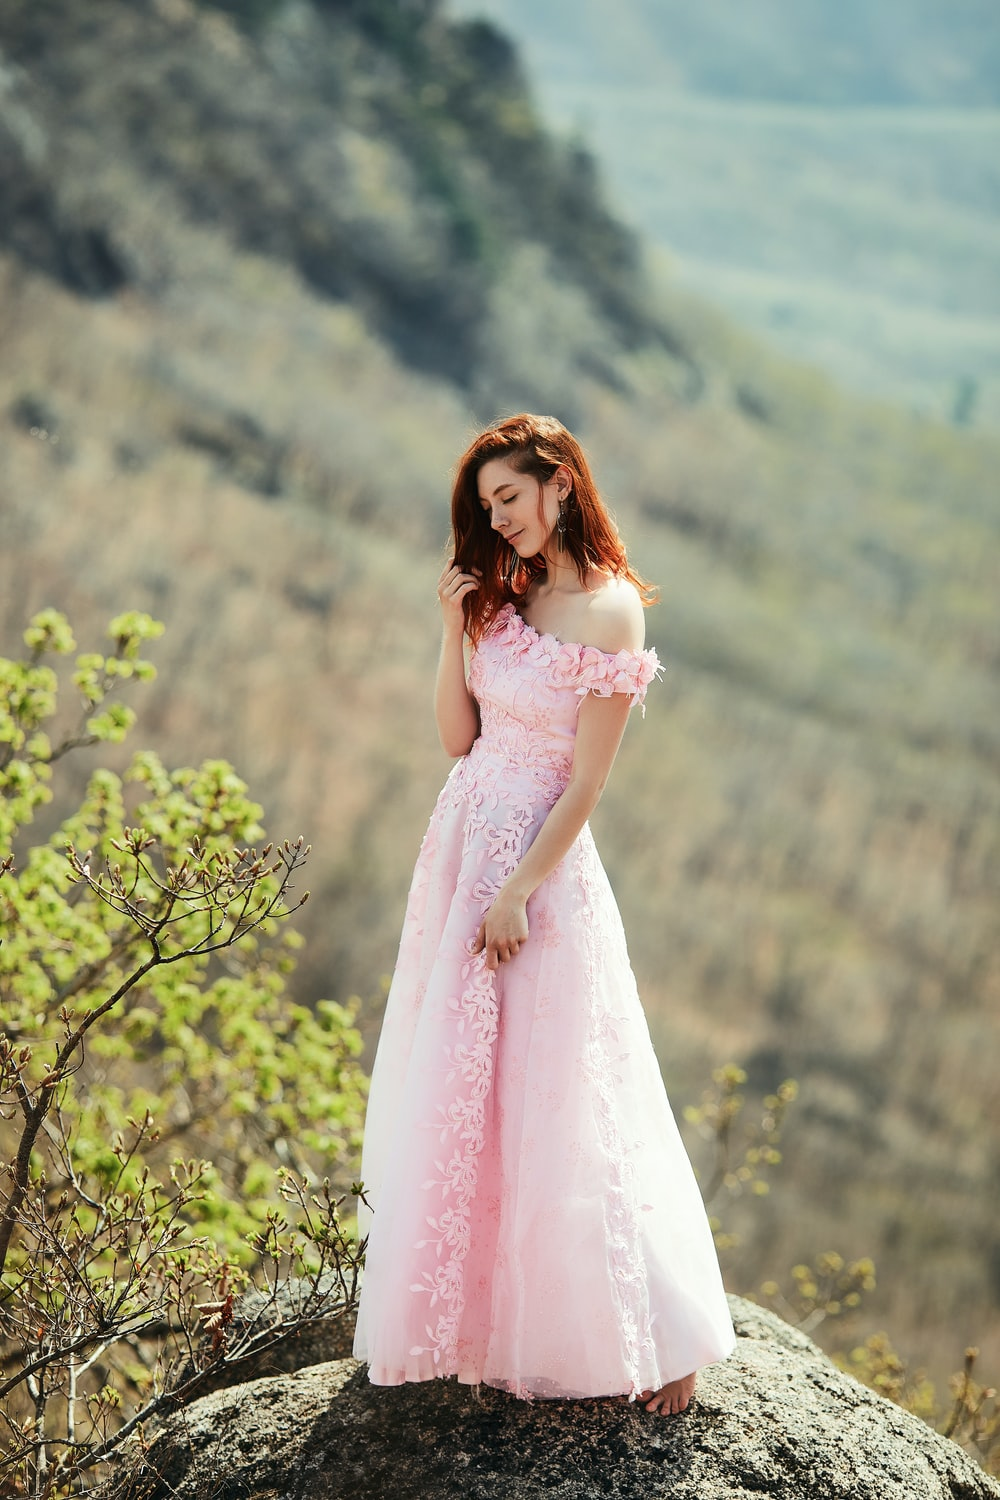 woman in pink dress standing near green tree during daytime